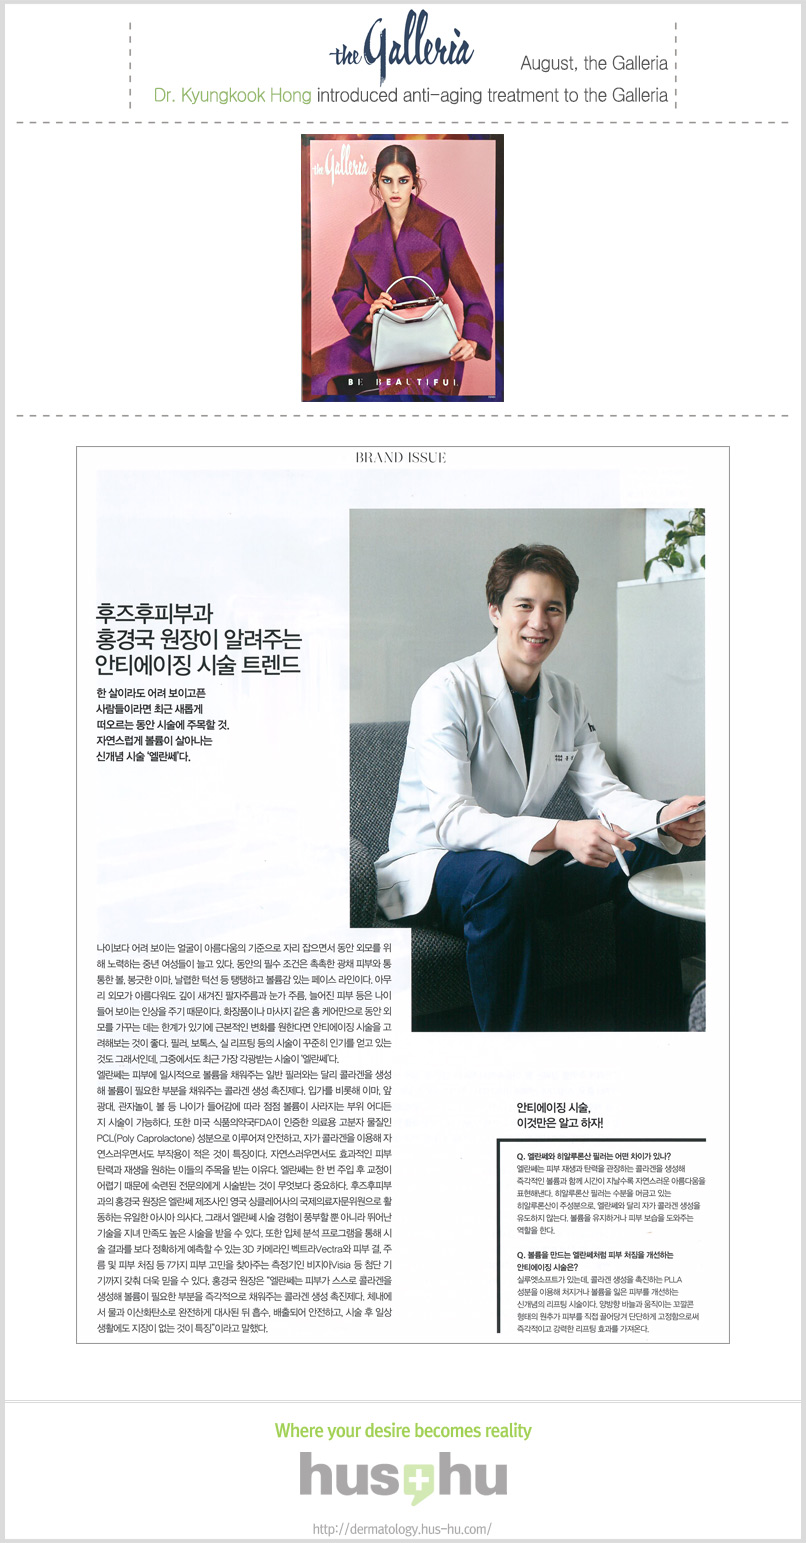 Dr. Kyungkook Hong introduced anti-aging treatment to the Galleria